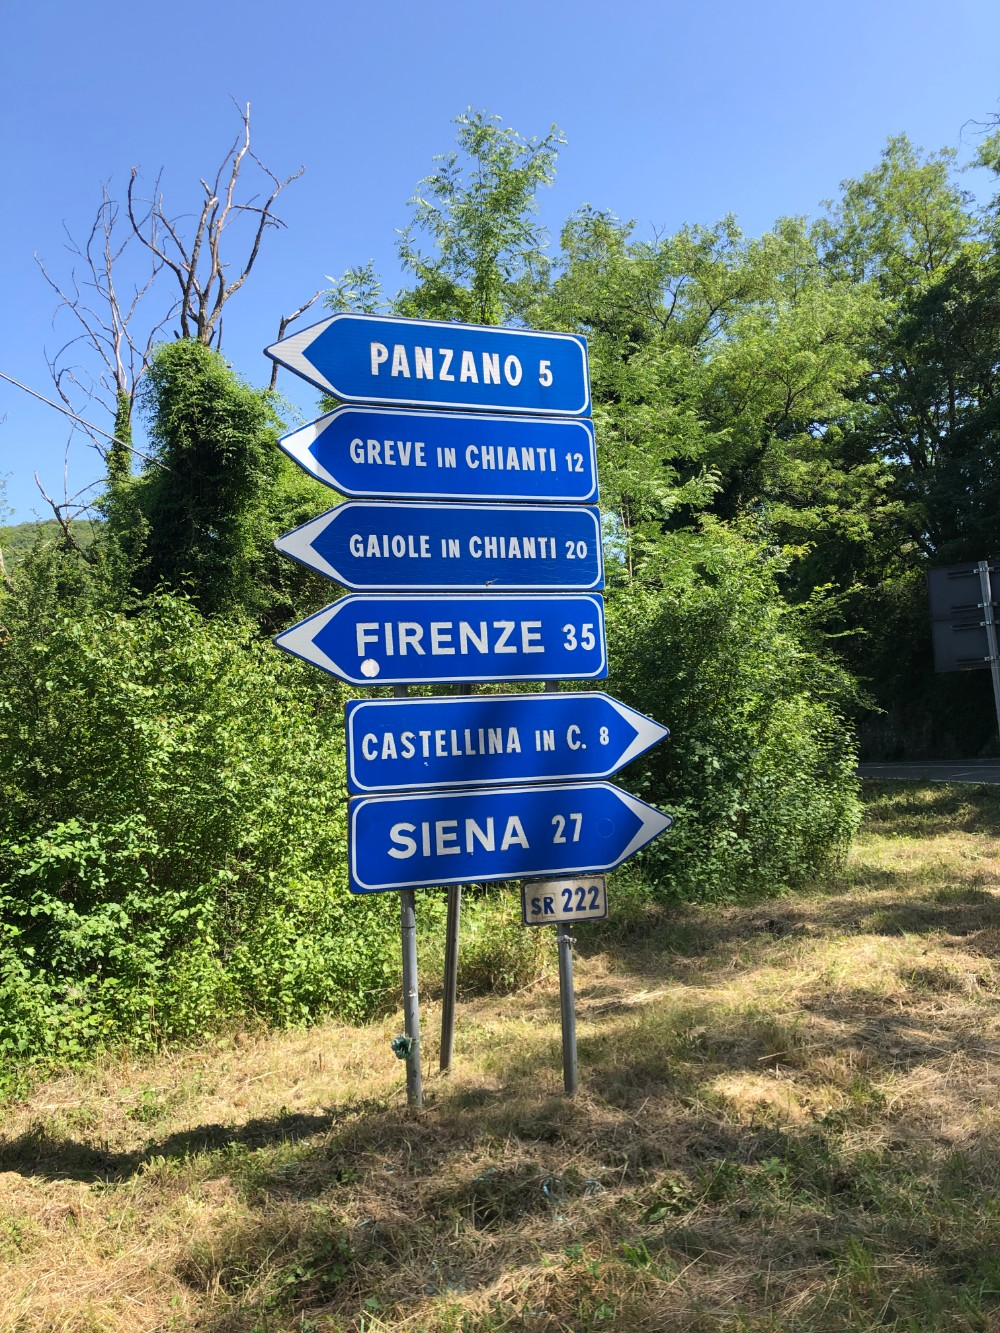 Traffic signs at the cross road while on our way to Querceto di Castellina in Tuscany in Italy